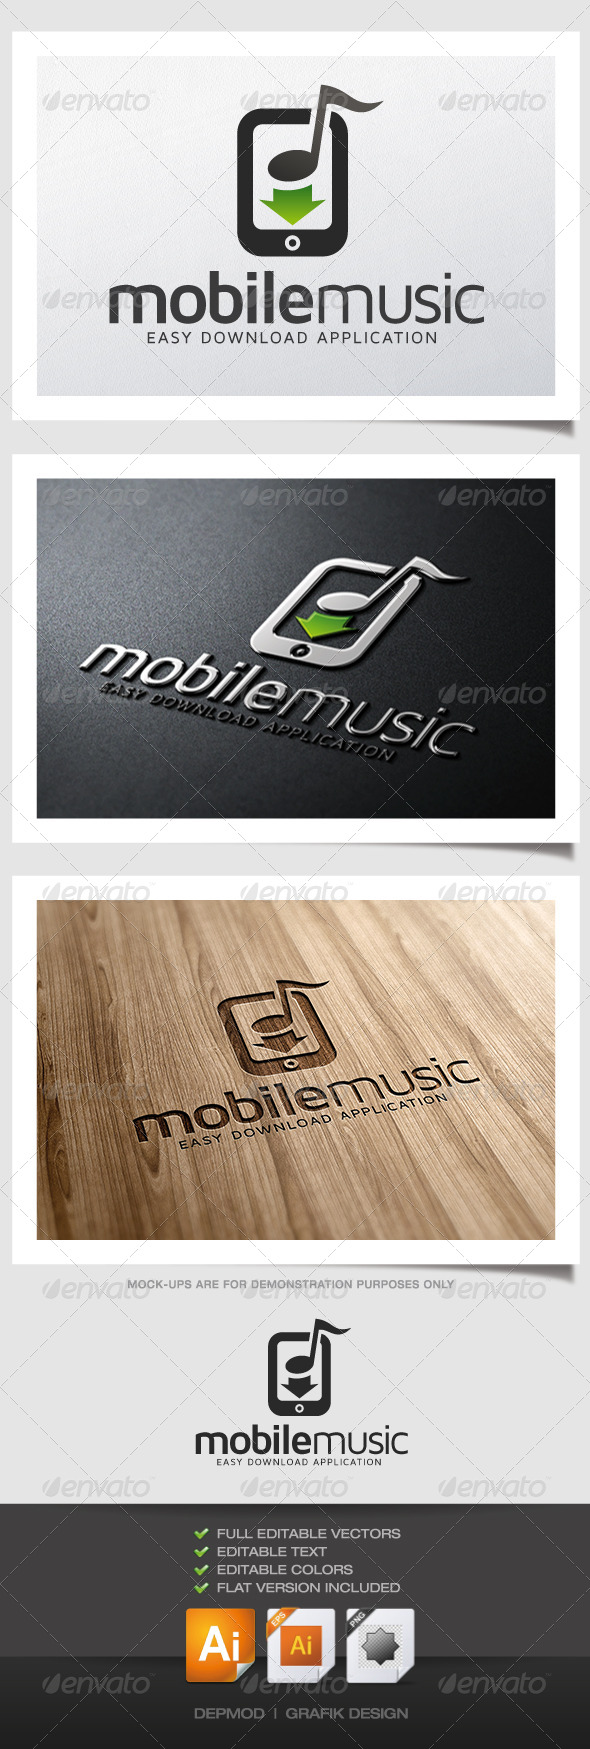 GraphicRiver Mobile Music Logo 4941561